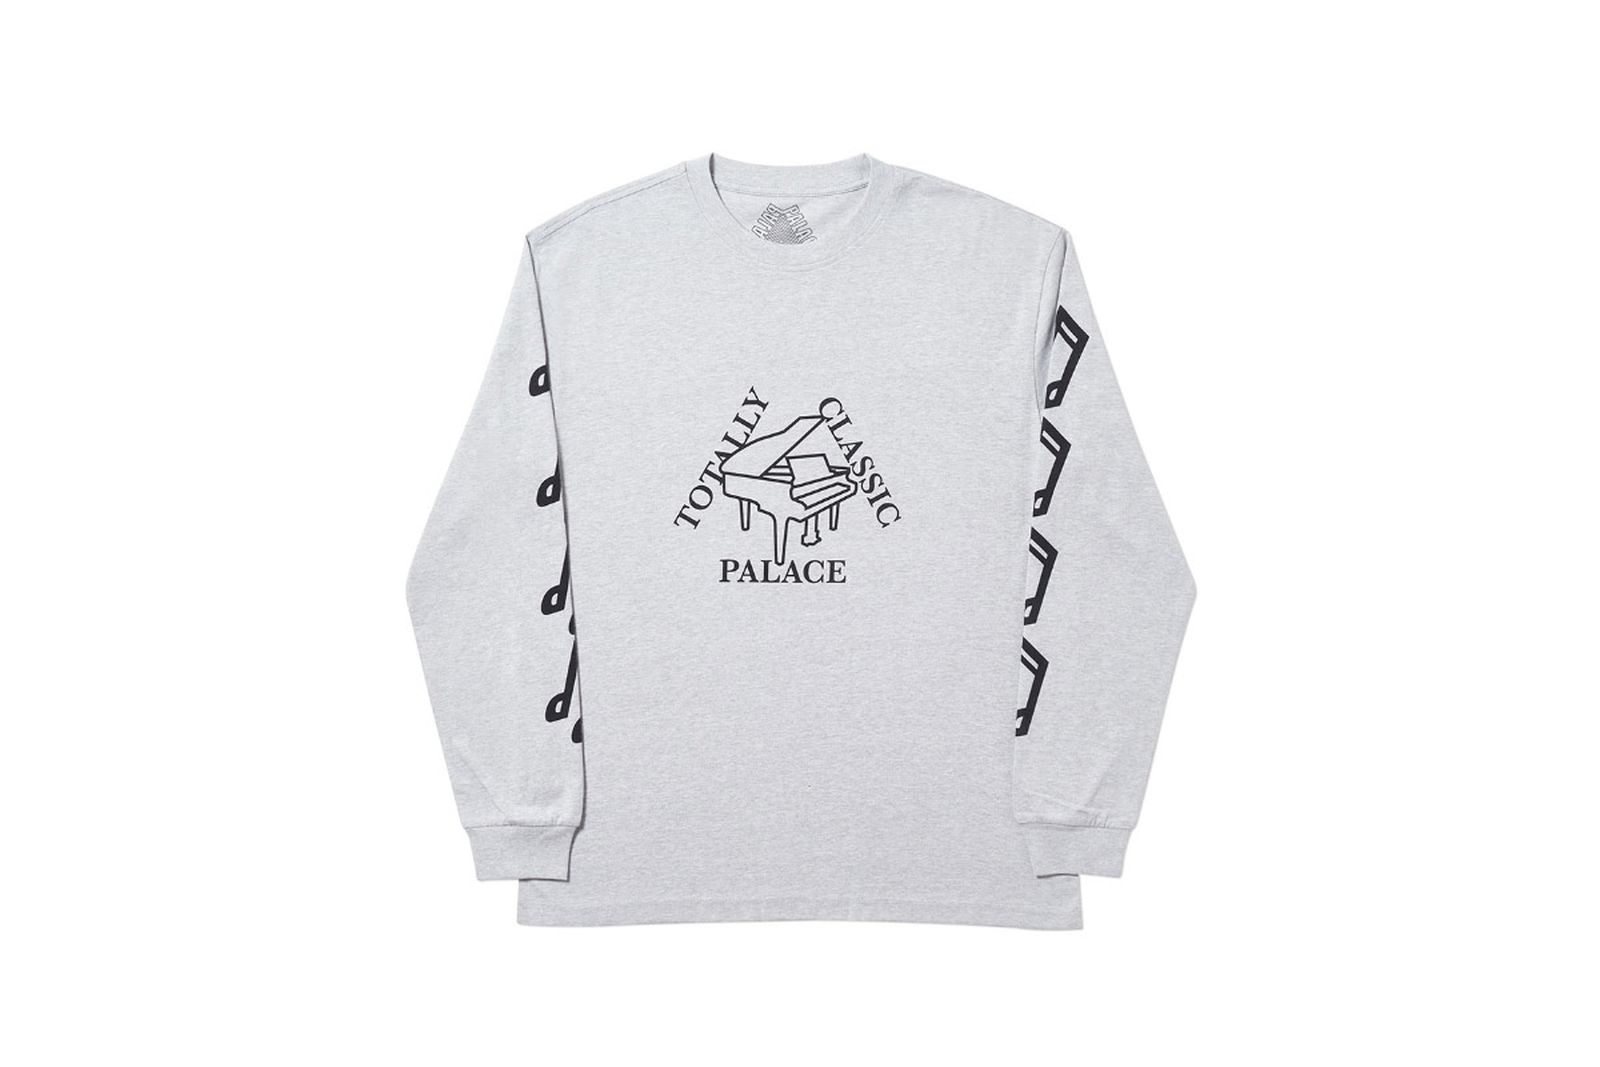 Palace 2019 Autumn Longsleeve Classis grey marl front